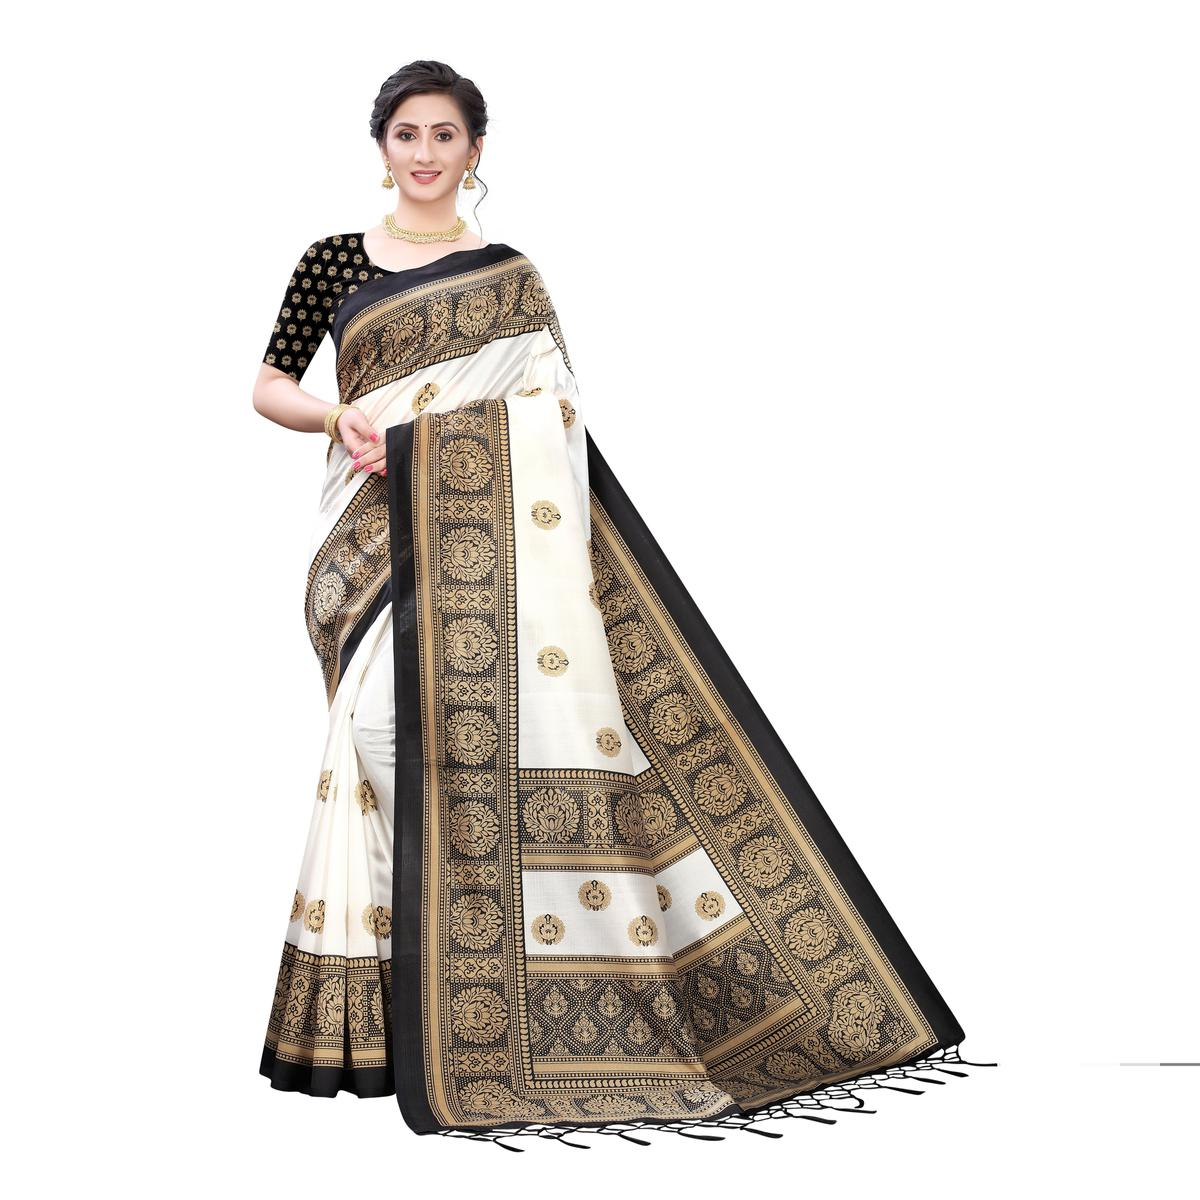 Exotic White-Black Colored Festive Wear Printed Art Silk Saree With Tassels